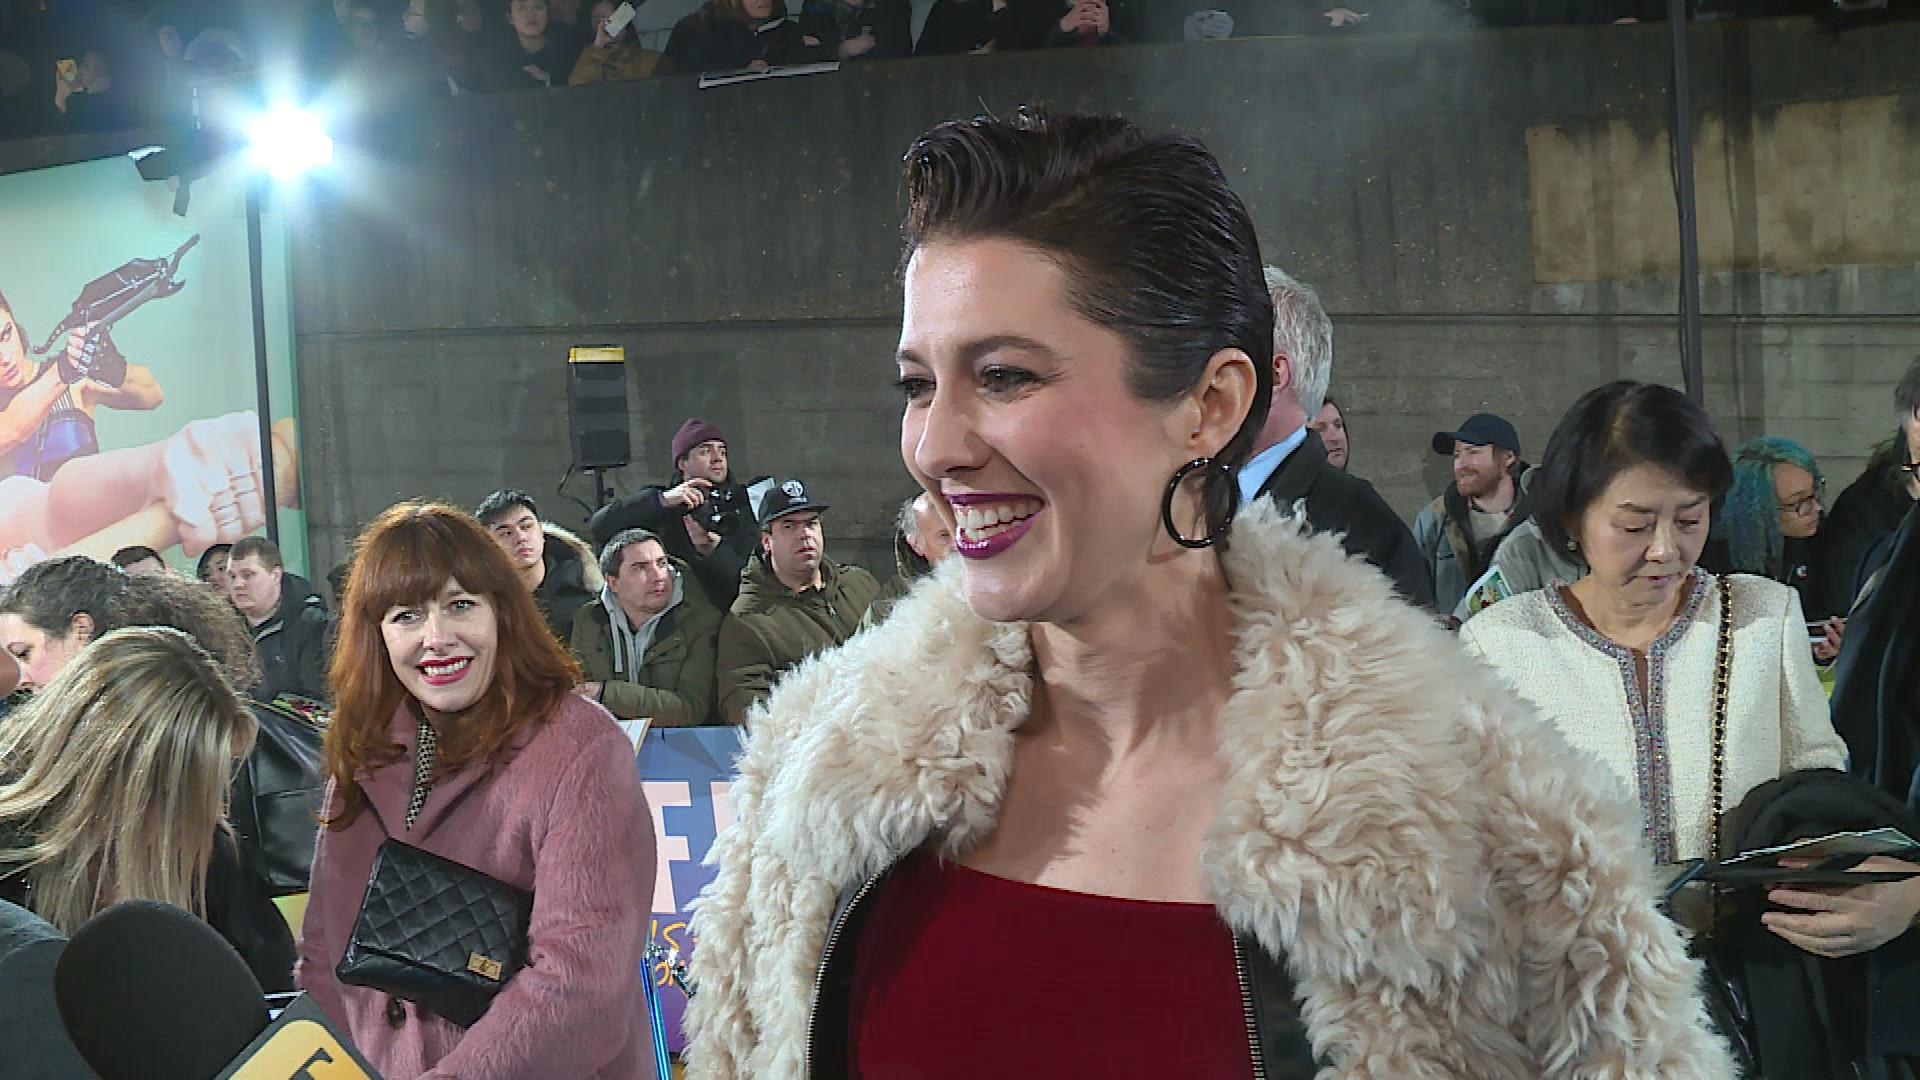 'Birds of Prey': Mary Elizabeth Winstead Was in 'Constant Pain' While Training for Film (Exclusive)